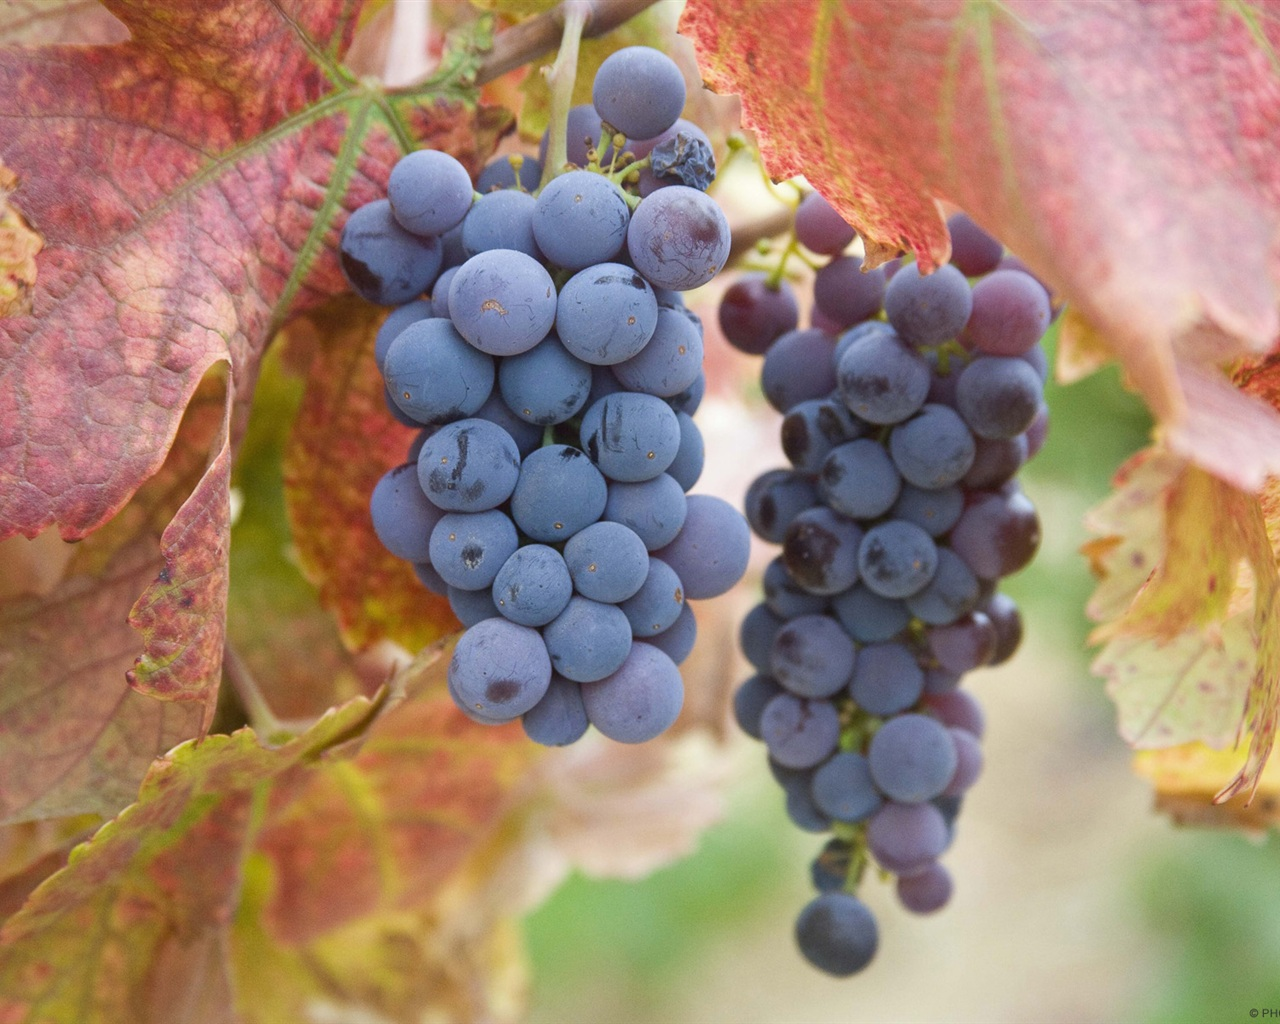 Ripe purple grapes wallpaper - 1280x1024